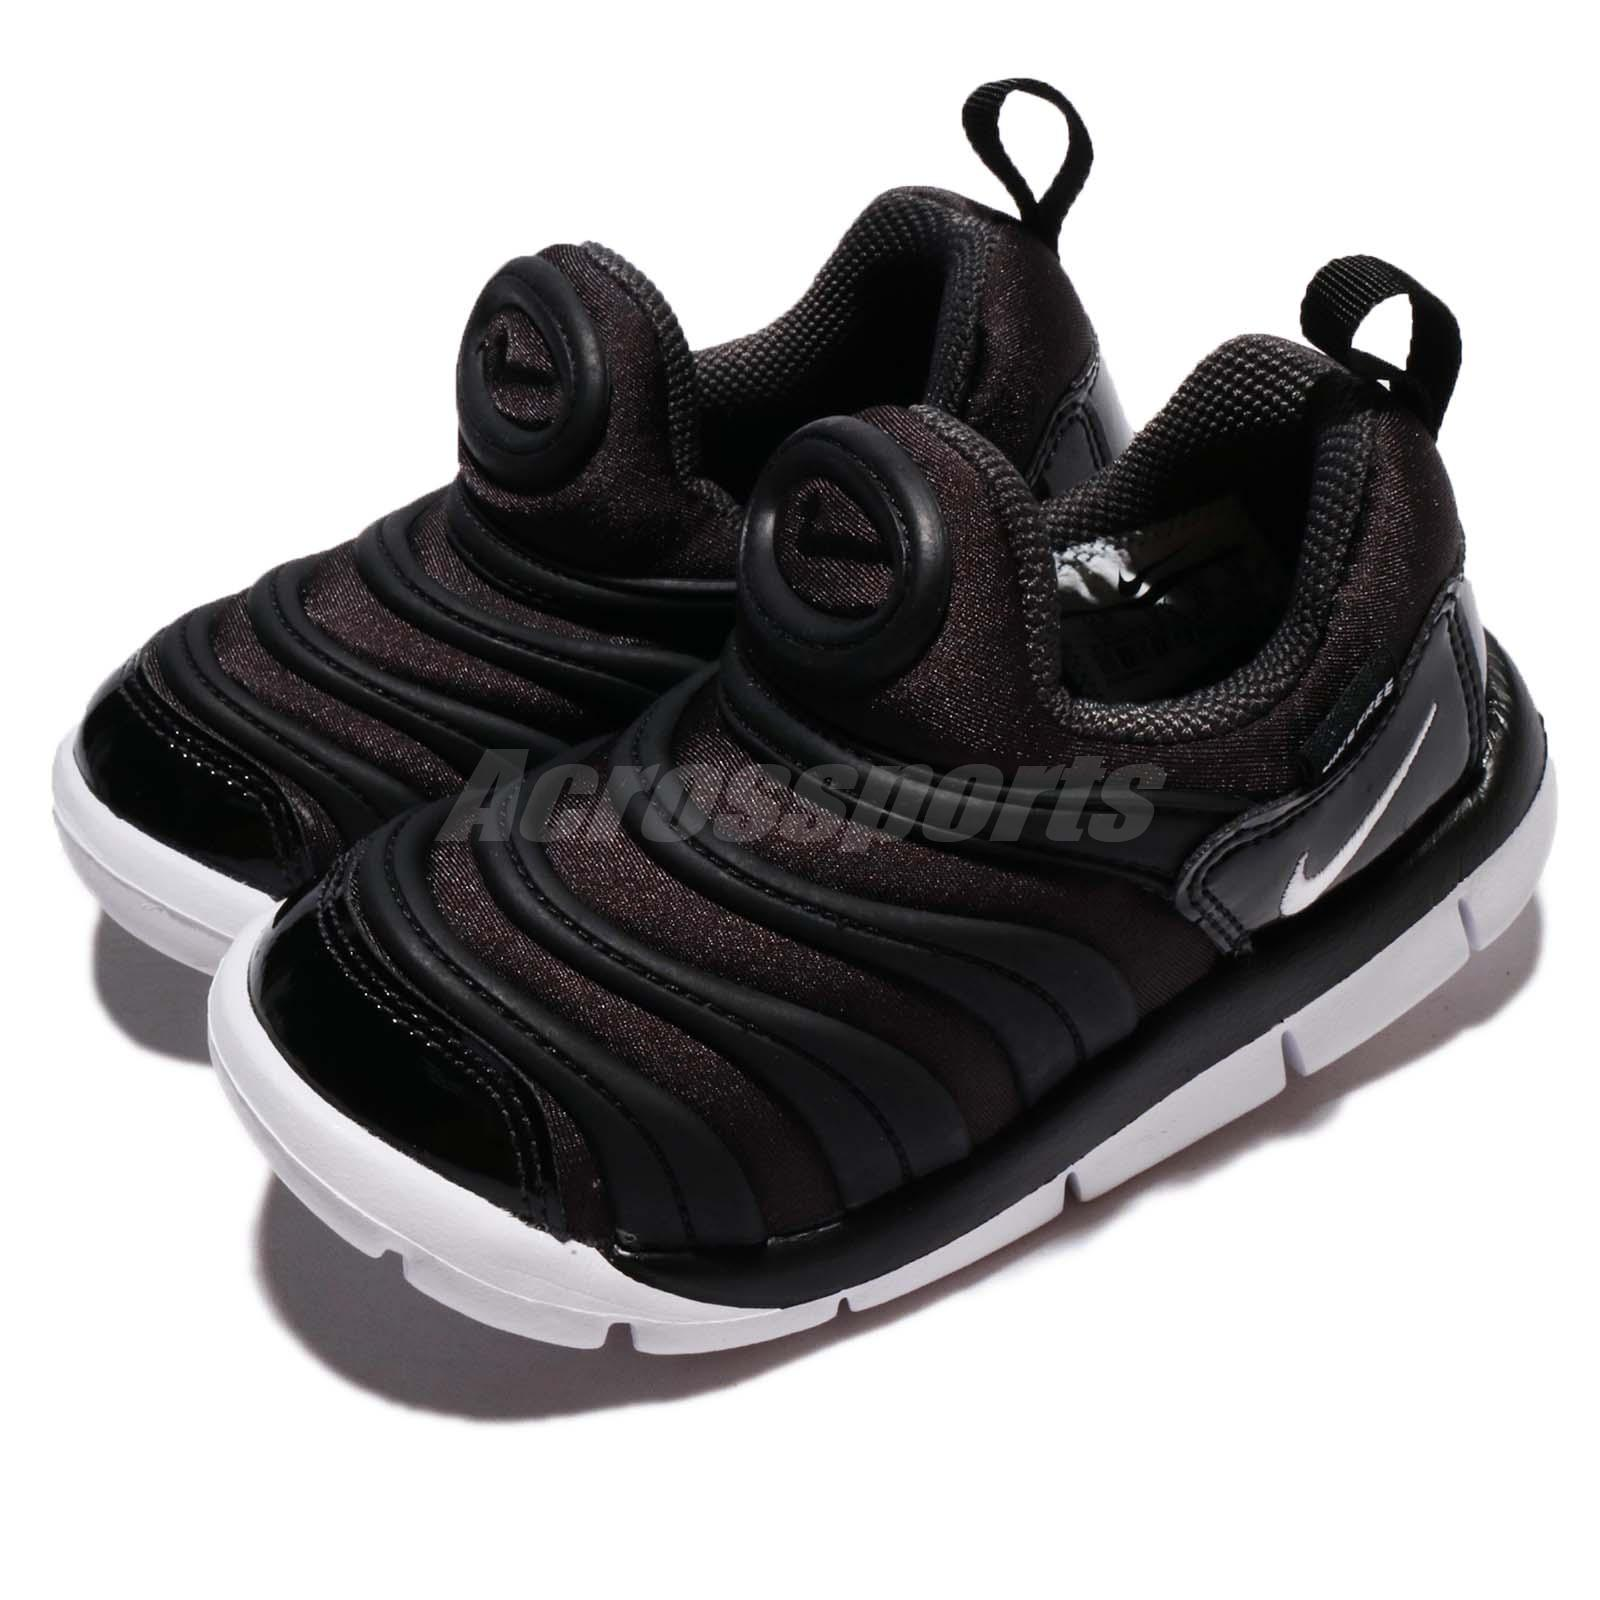 686848378c3b Details about Nike Dynamo Free TD Anthracite Black Toddler Infant Baby Shoe  Sneaker 343938-013